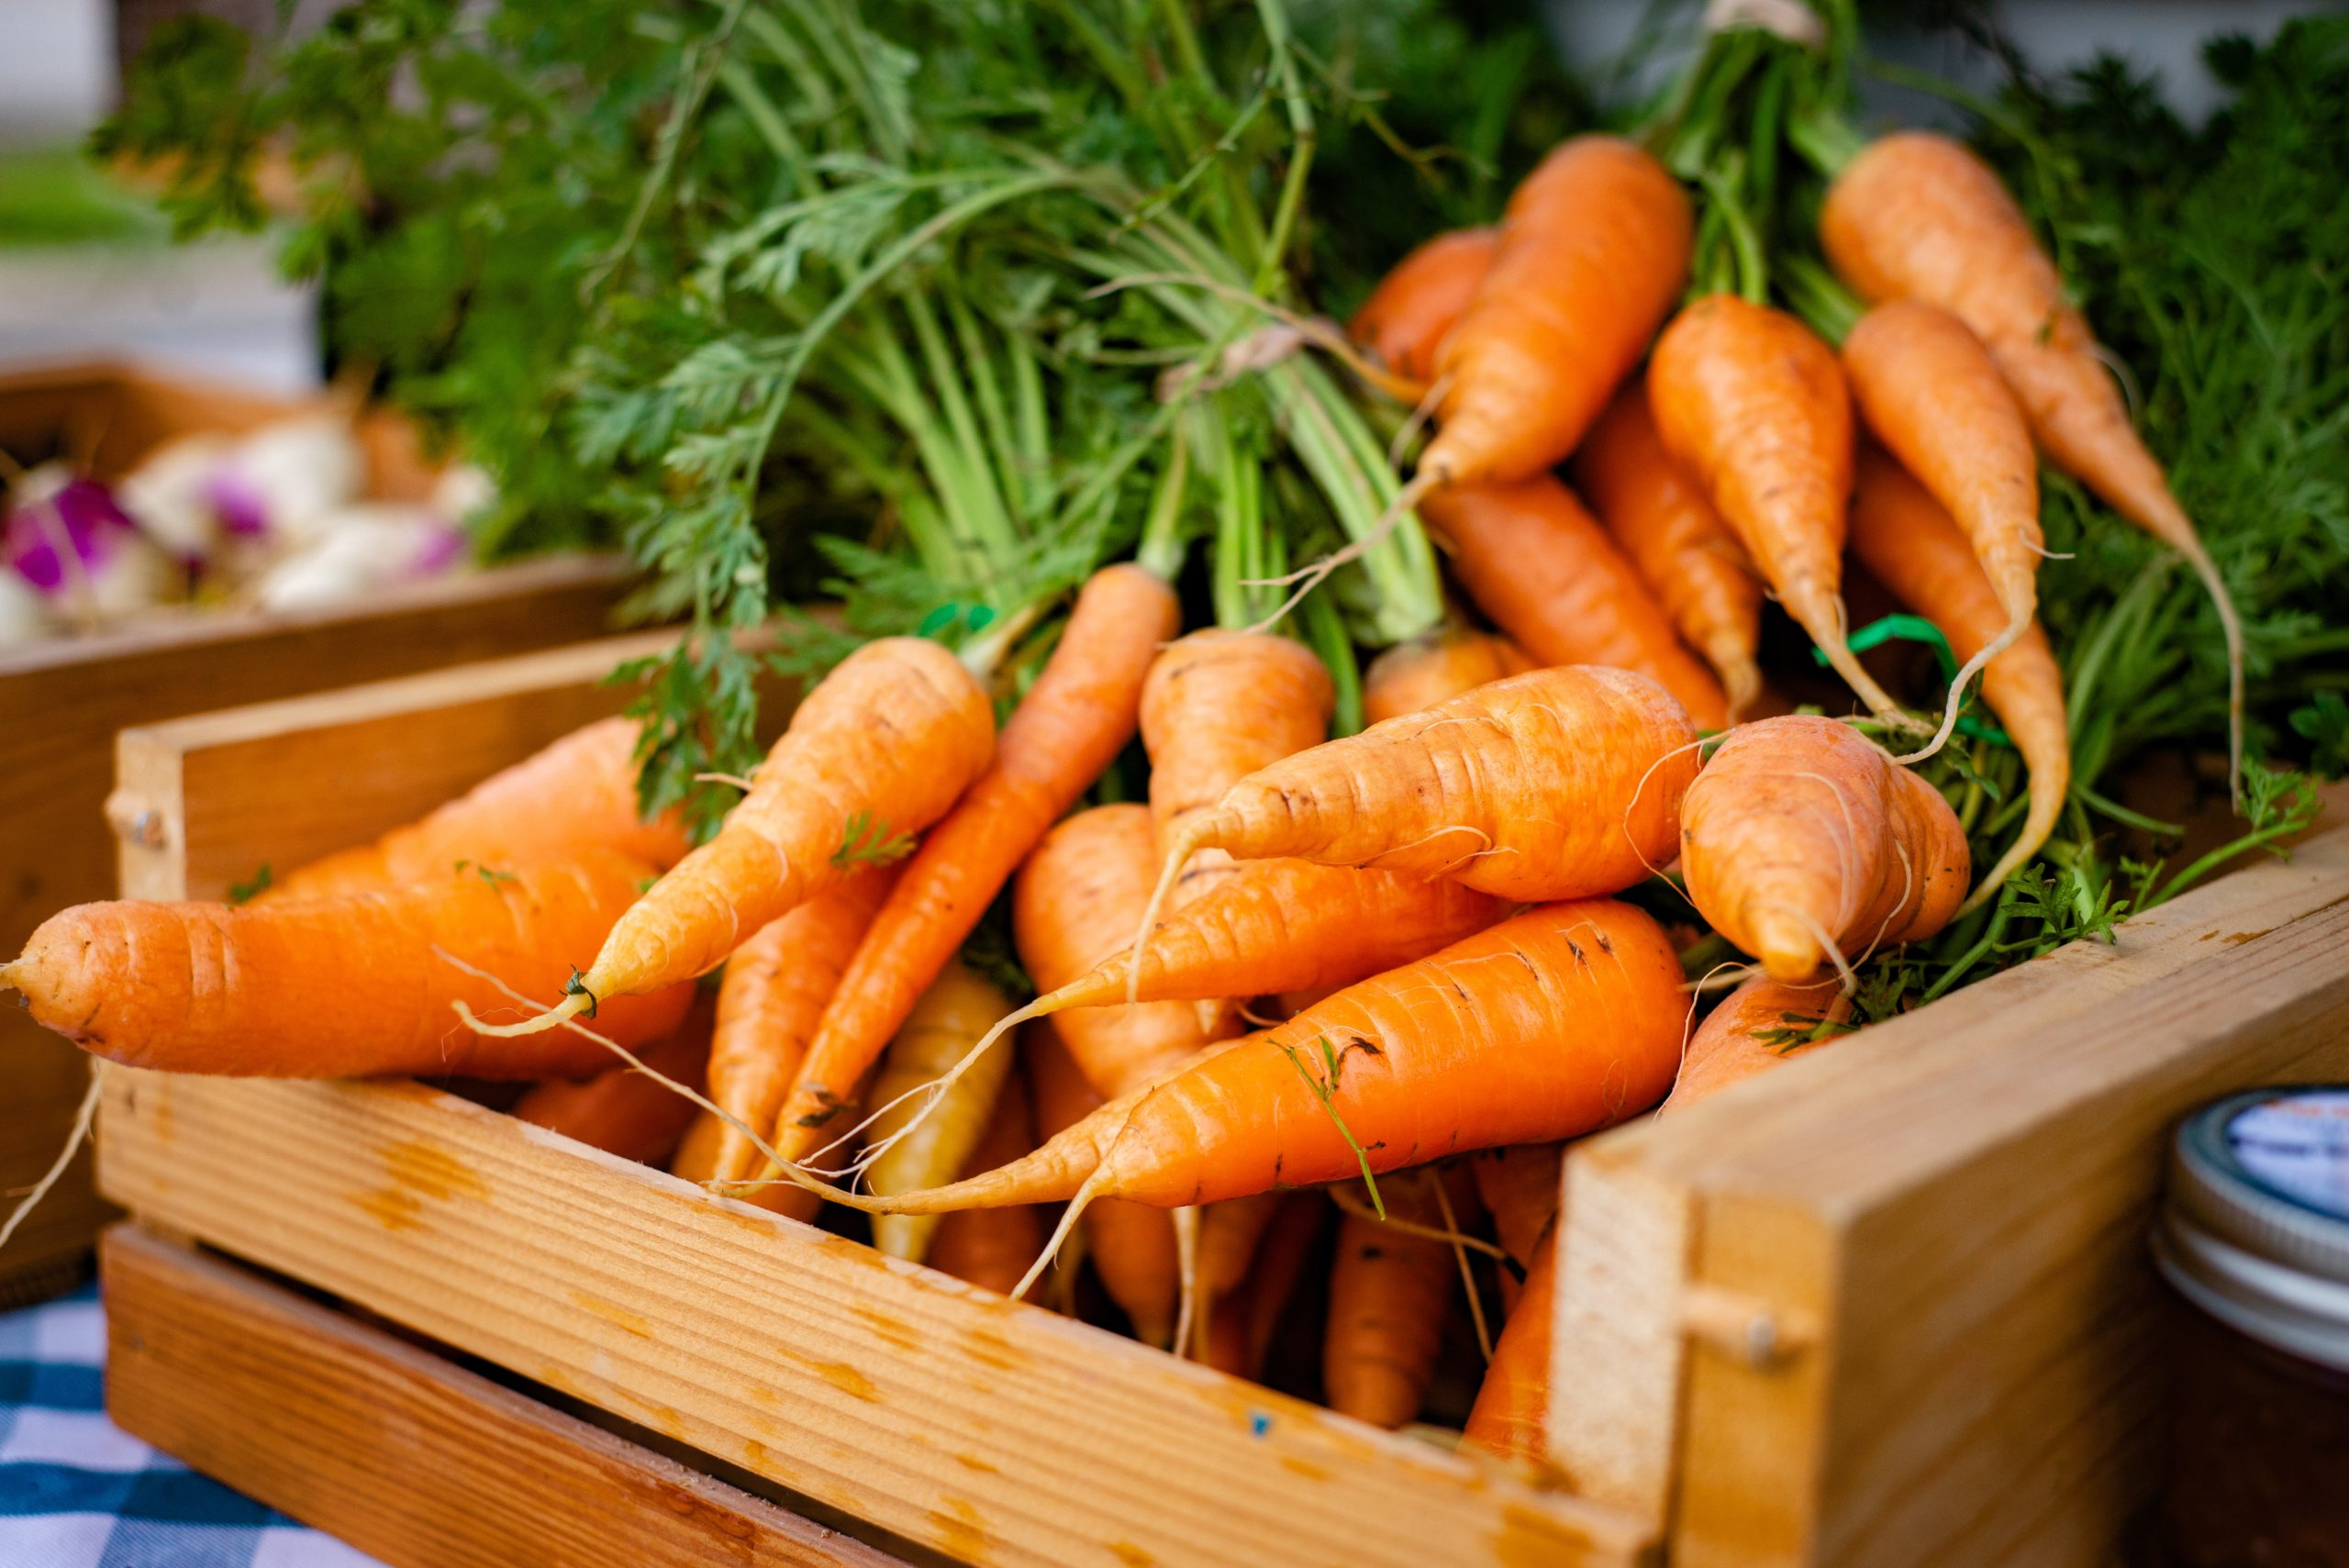 Close up of bunched carrots